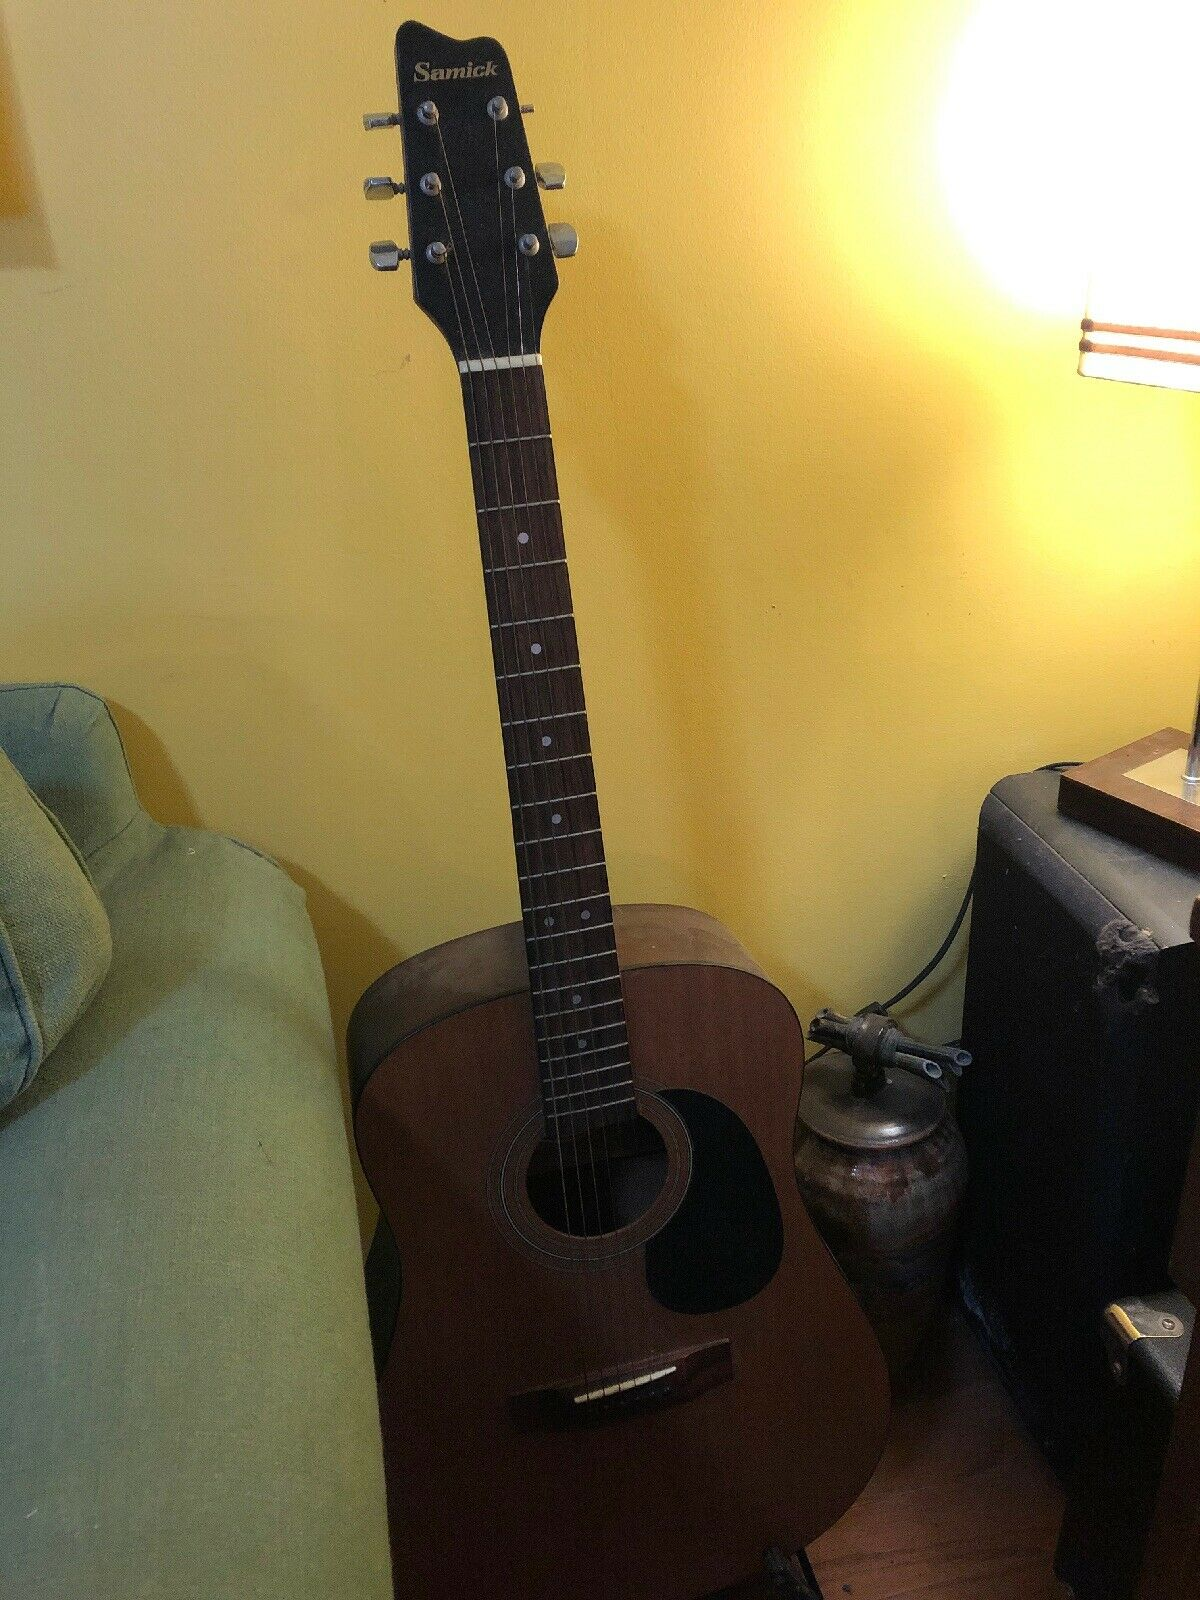 Samick Acoustic Guitar Cw 015 5day Nr Auction For Sale Online Ebay